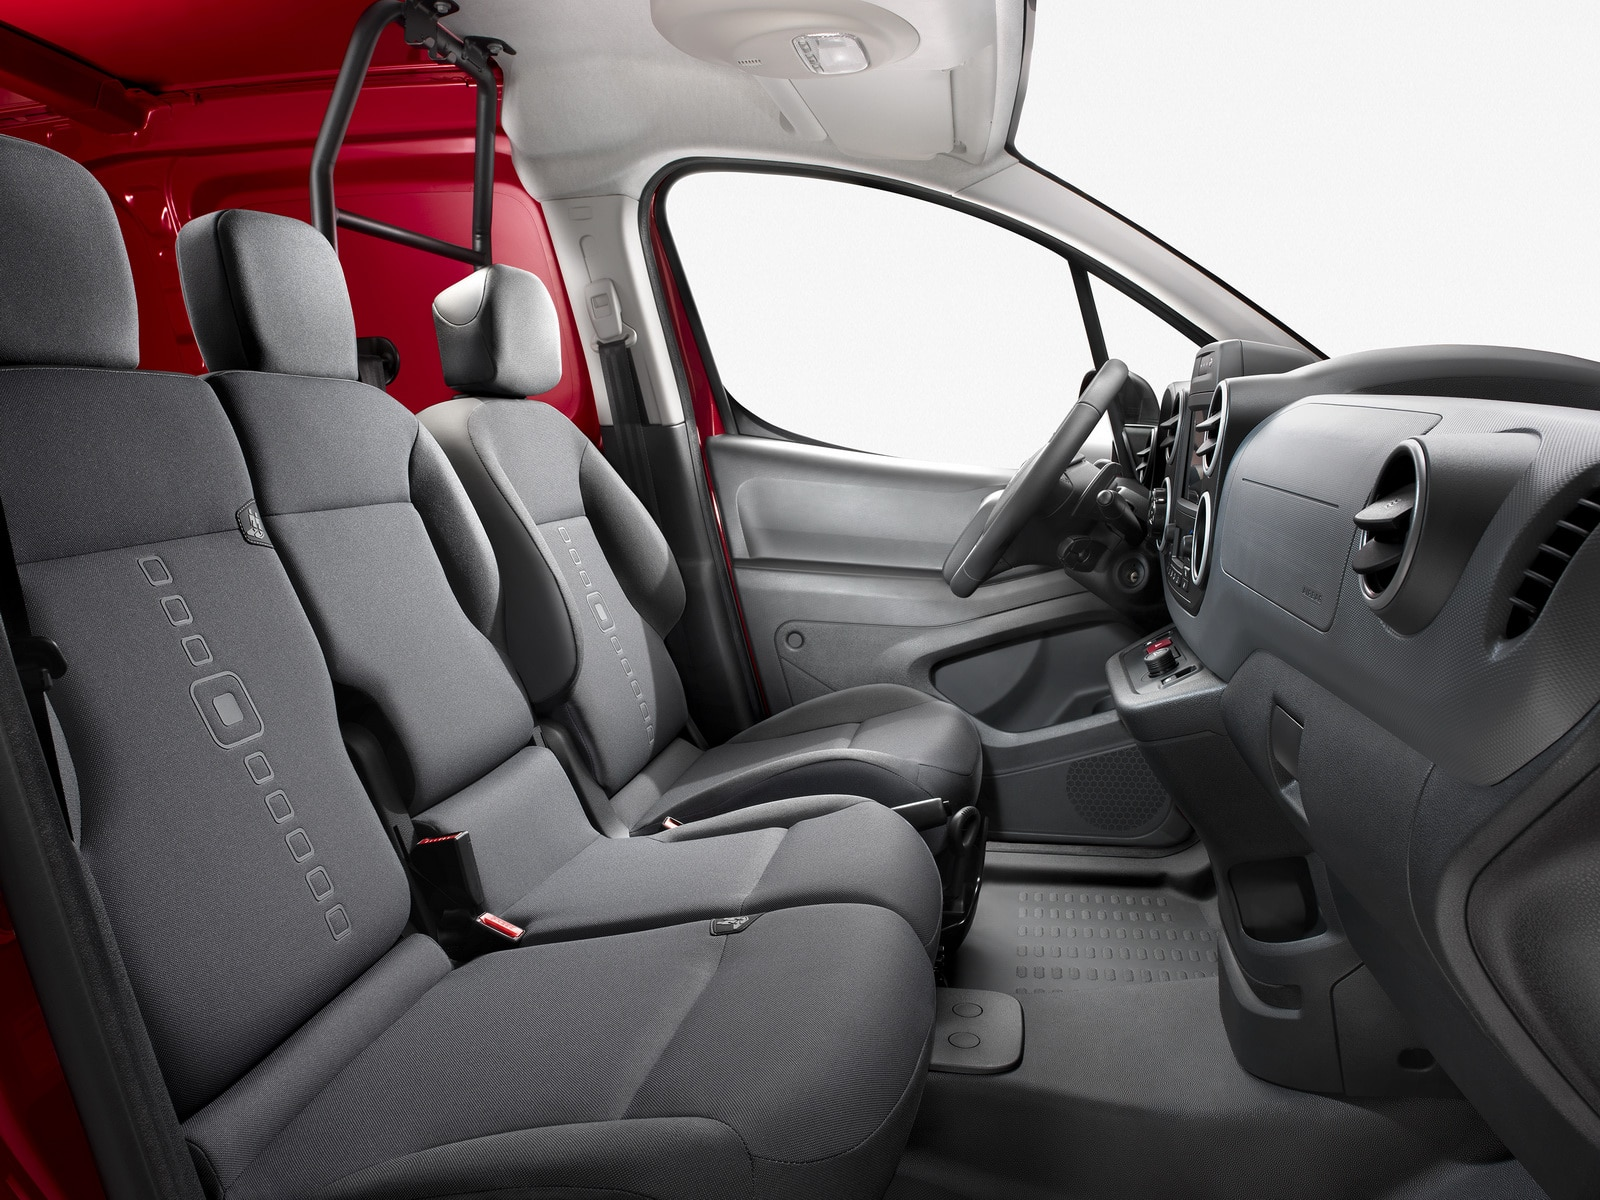 voiture citroen berlingo utilitaire 3 places avant. Black Bedroom Furniture Sets. Home Design Ideas